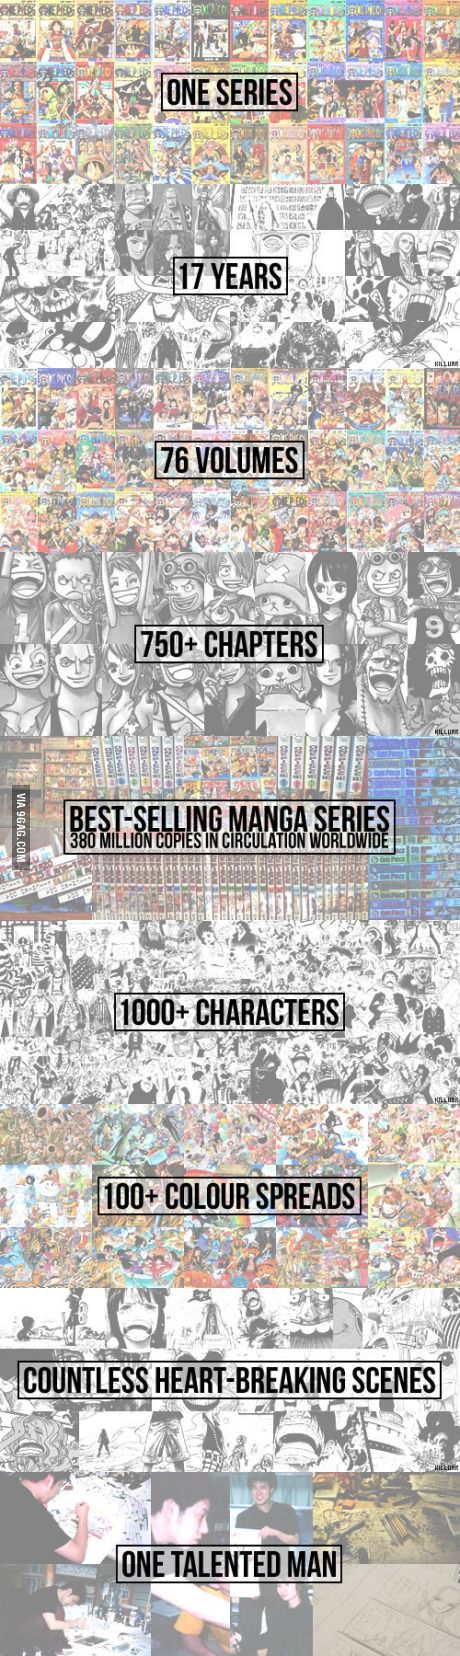 For All You One Piece Fans